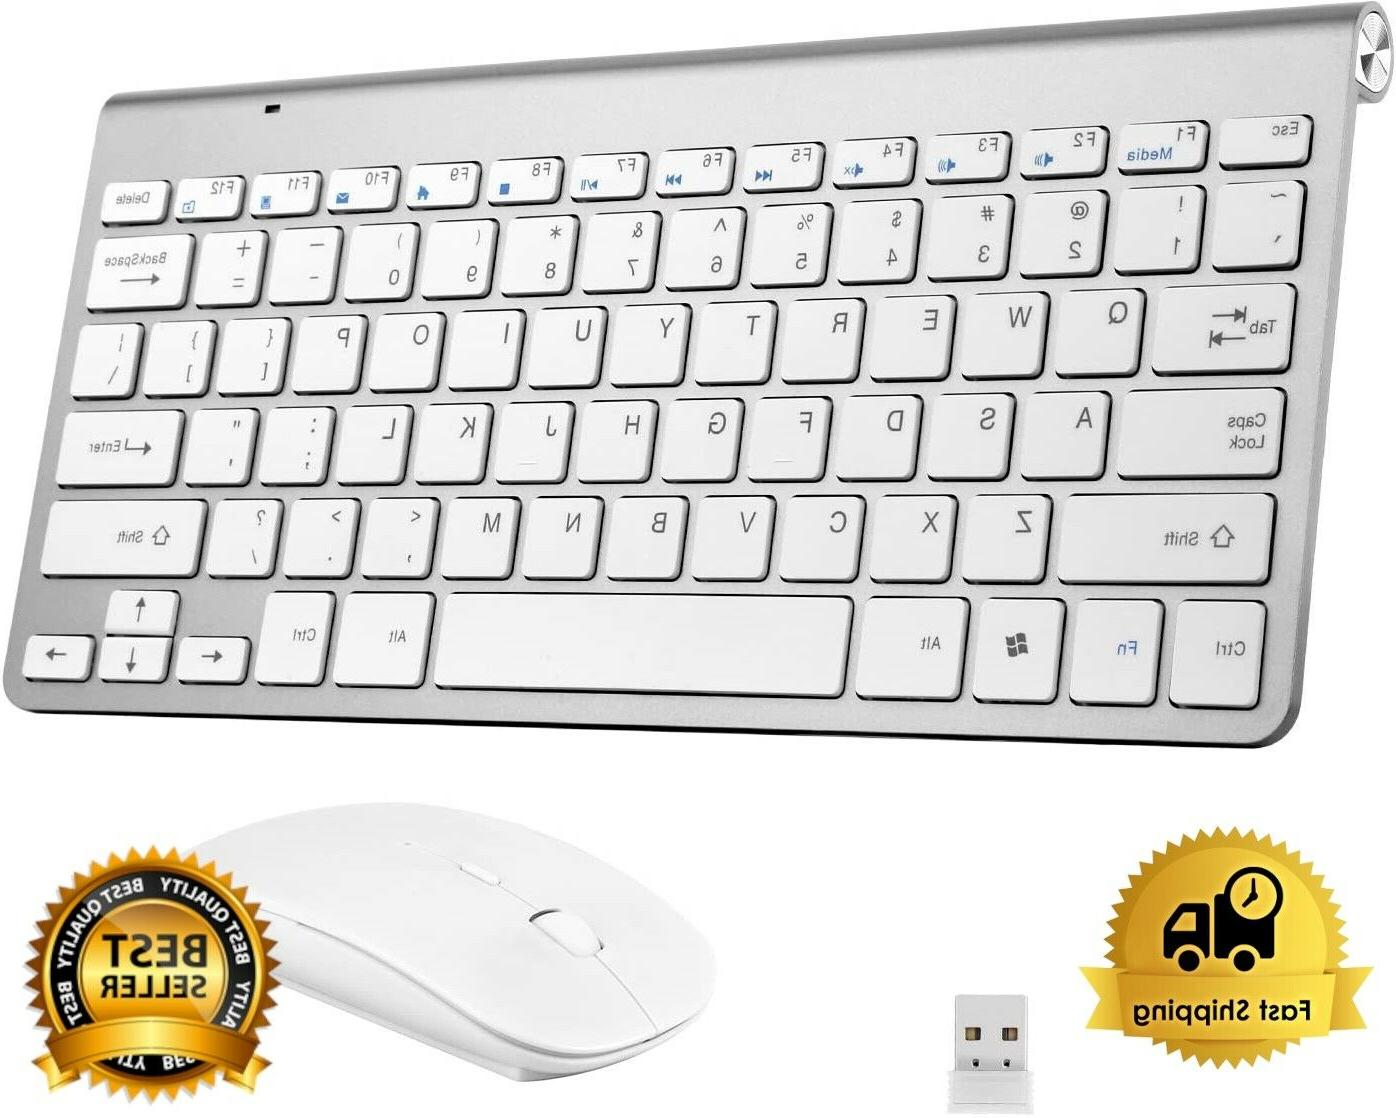 silver white wireless keyboard and mouse bundle